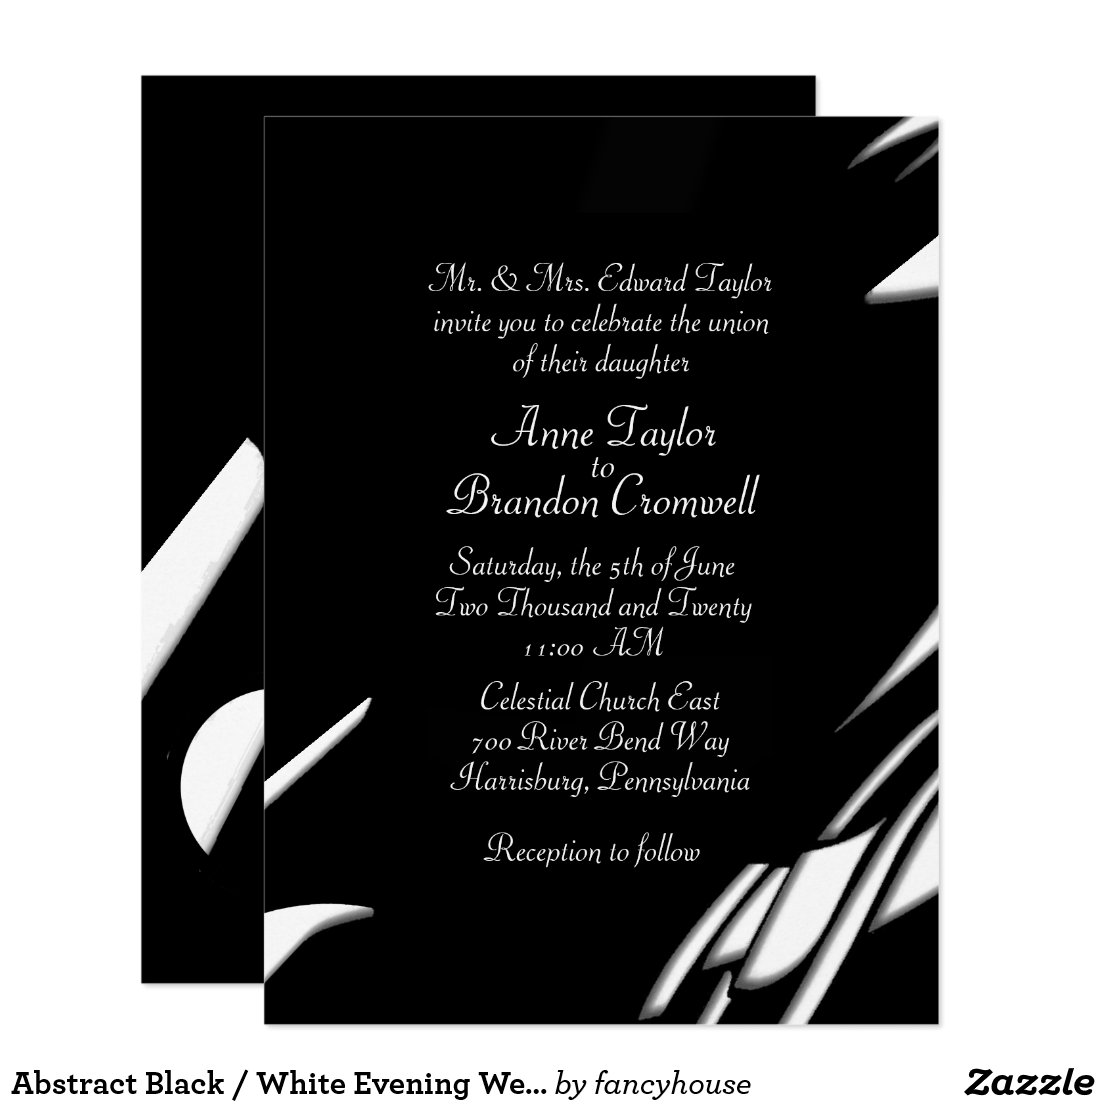 Abstract Black / White Evening Wedding Invitation